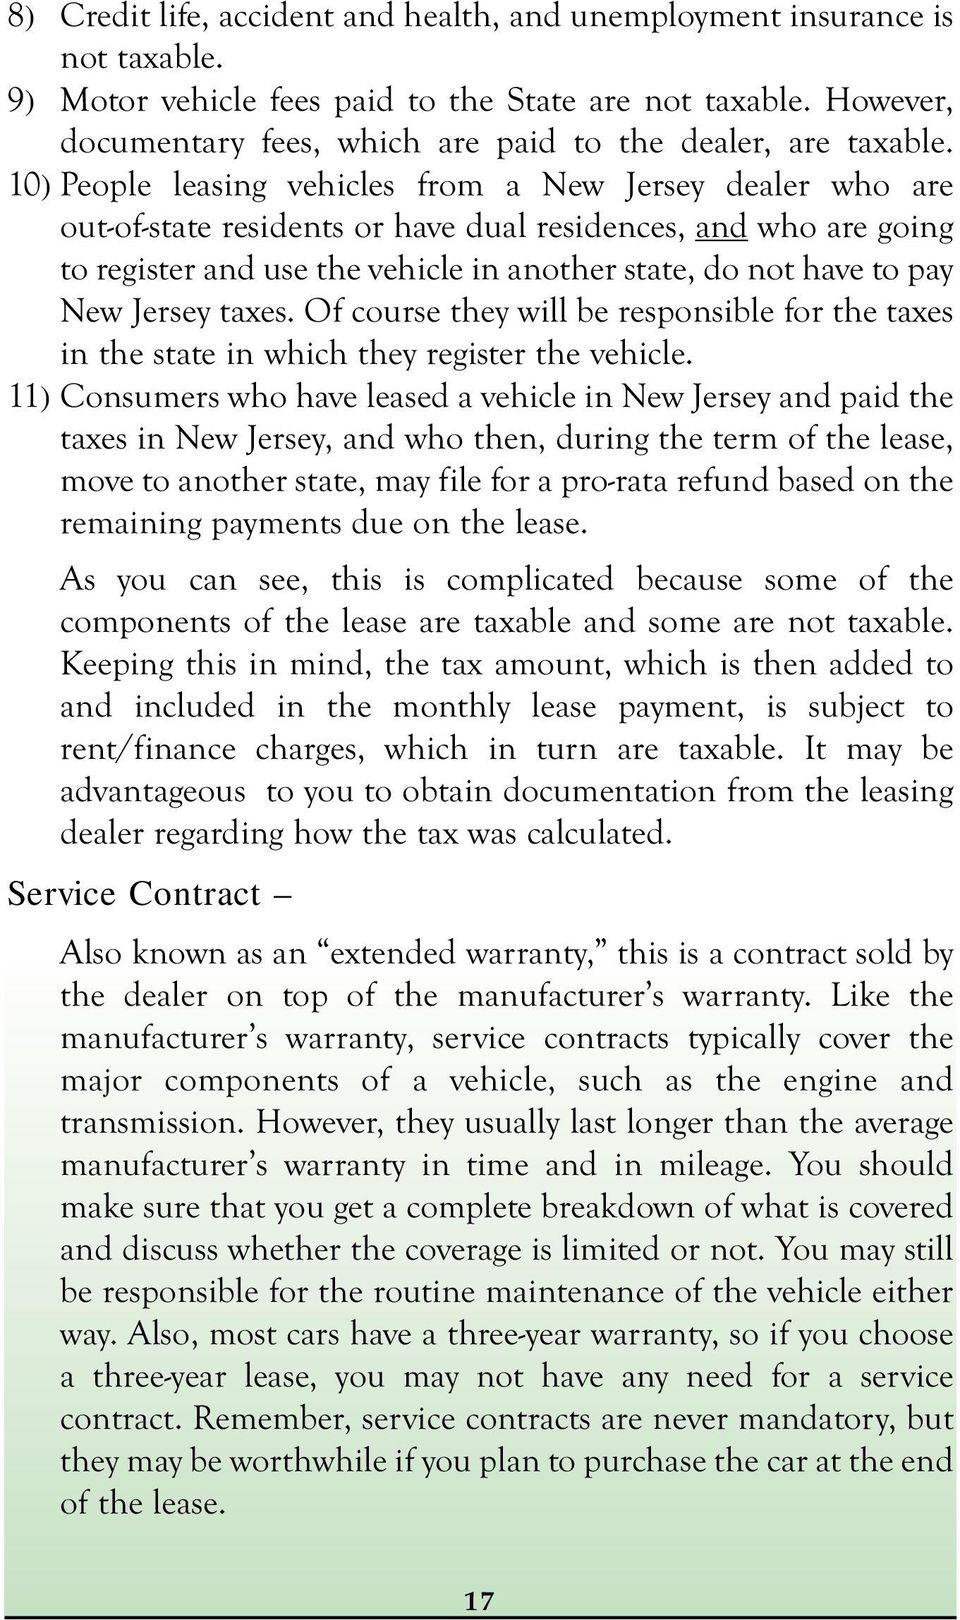 10) People leasing vehicles from a New Jersey dealer who are out-of-state residents or have dual residences, and who are going to register and use the vehicle in another state, do not have to pay New